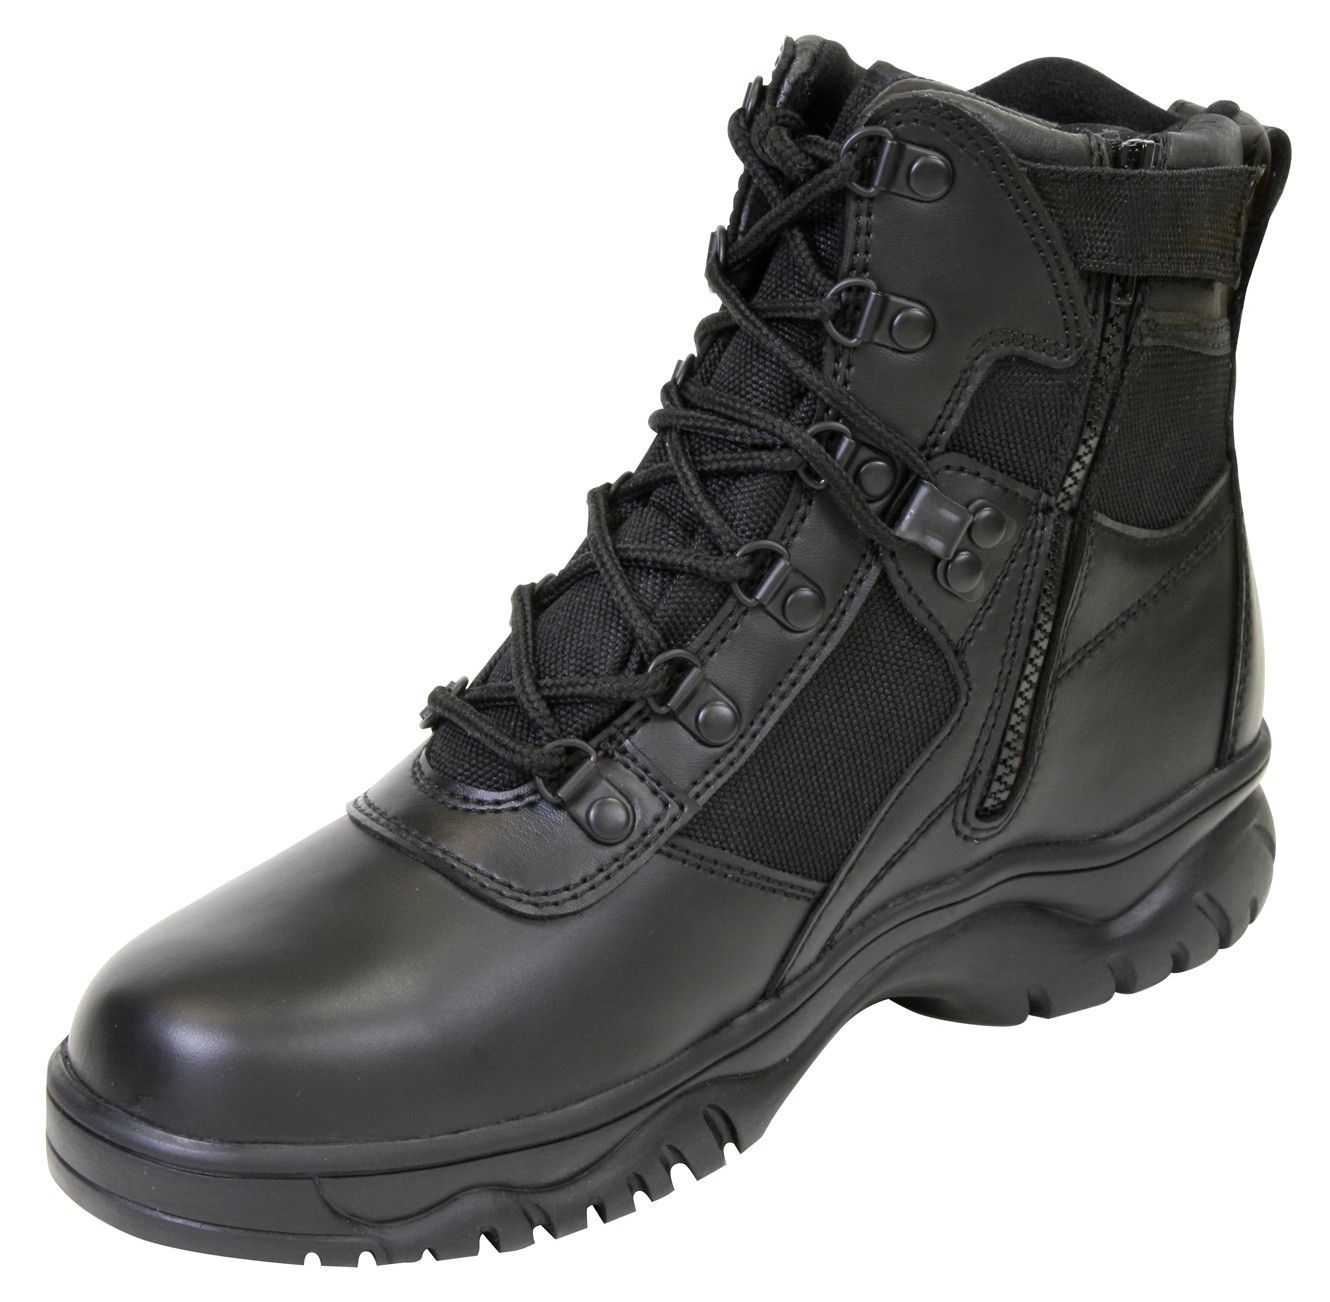 Condor Outdoor Bailey 8 Inch Zip Bottes Militaires